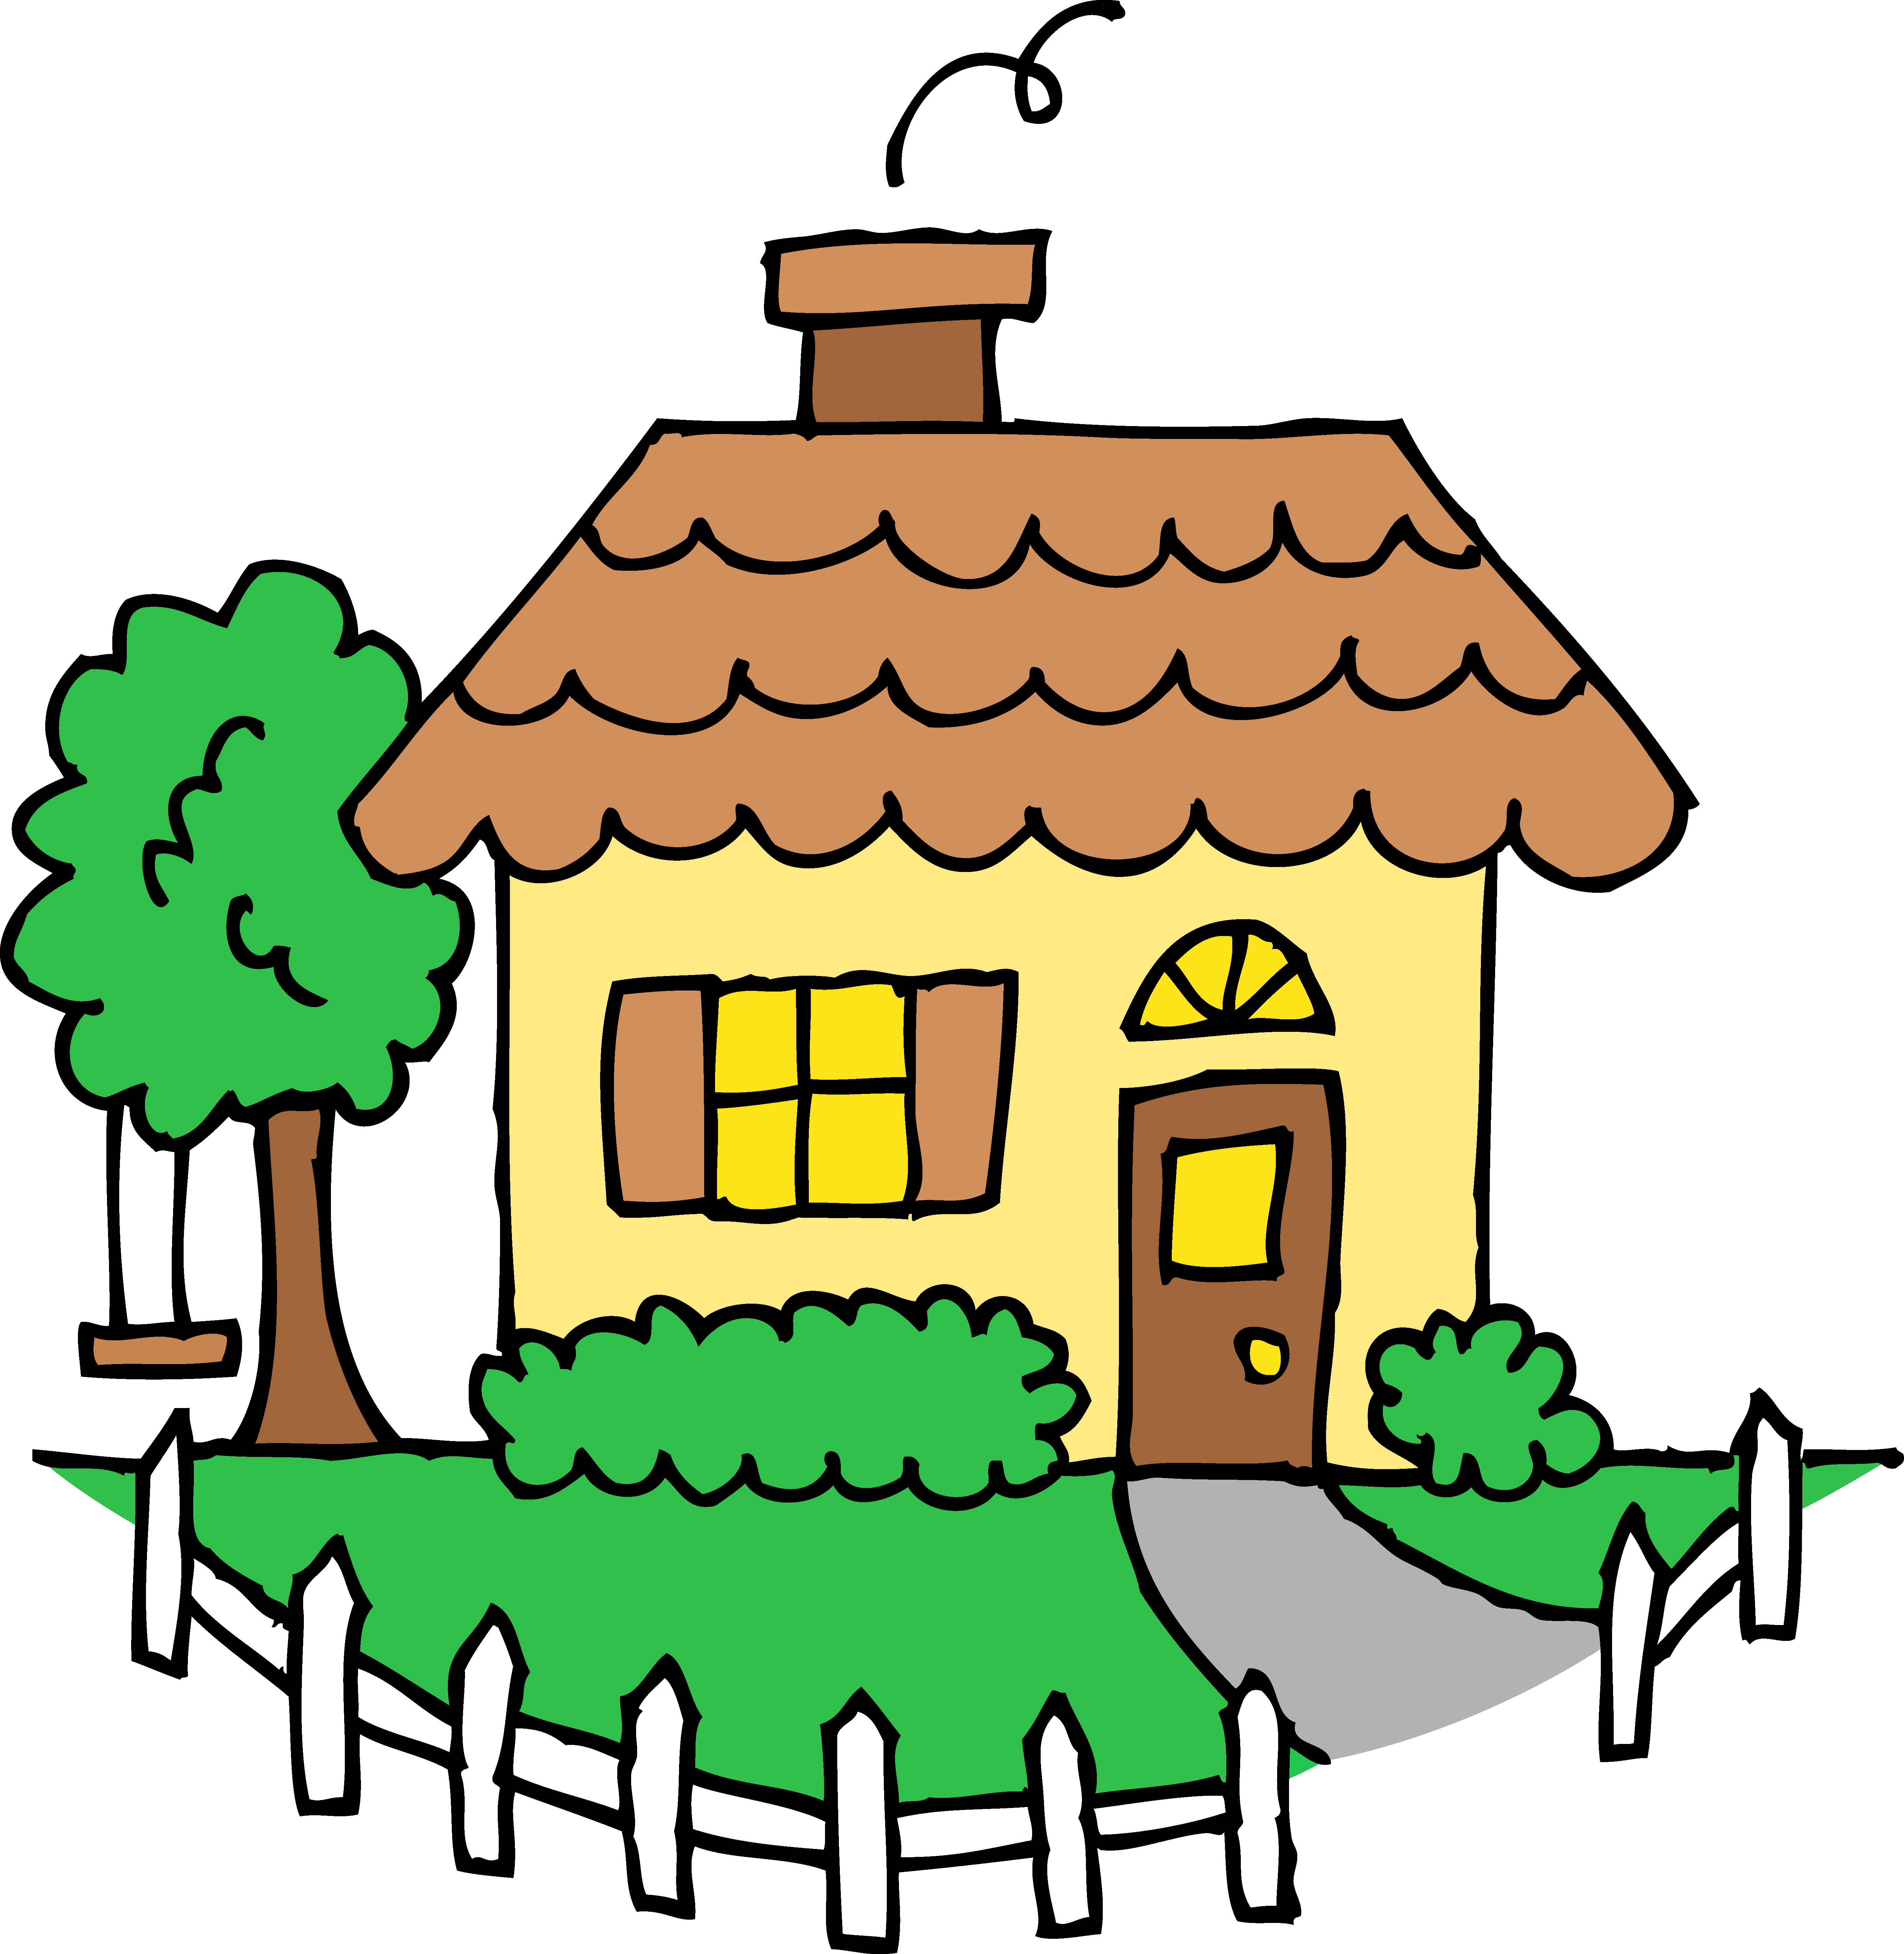 Happy free images clipartix. Windy clipart house